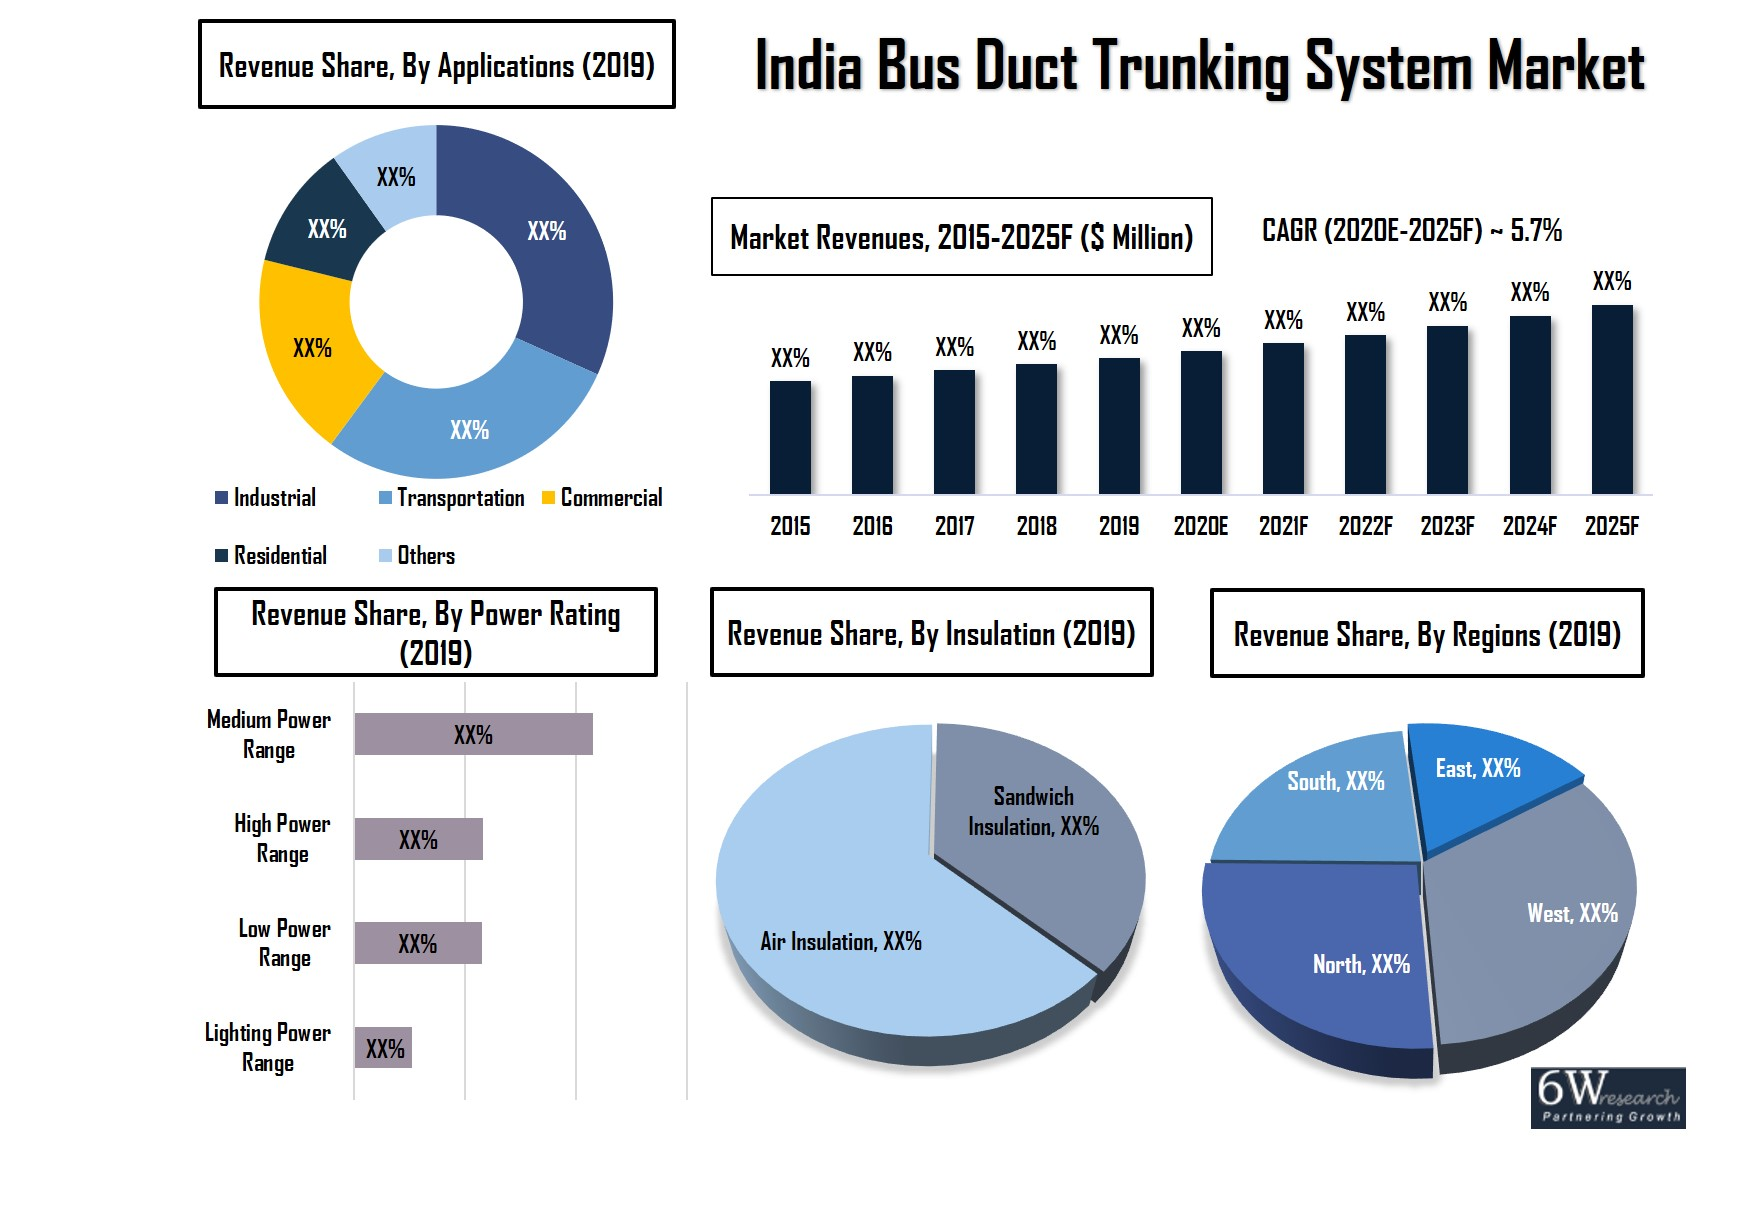 India Bus Duct Trunking System Market